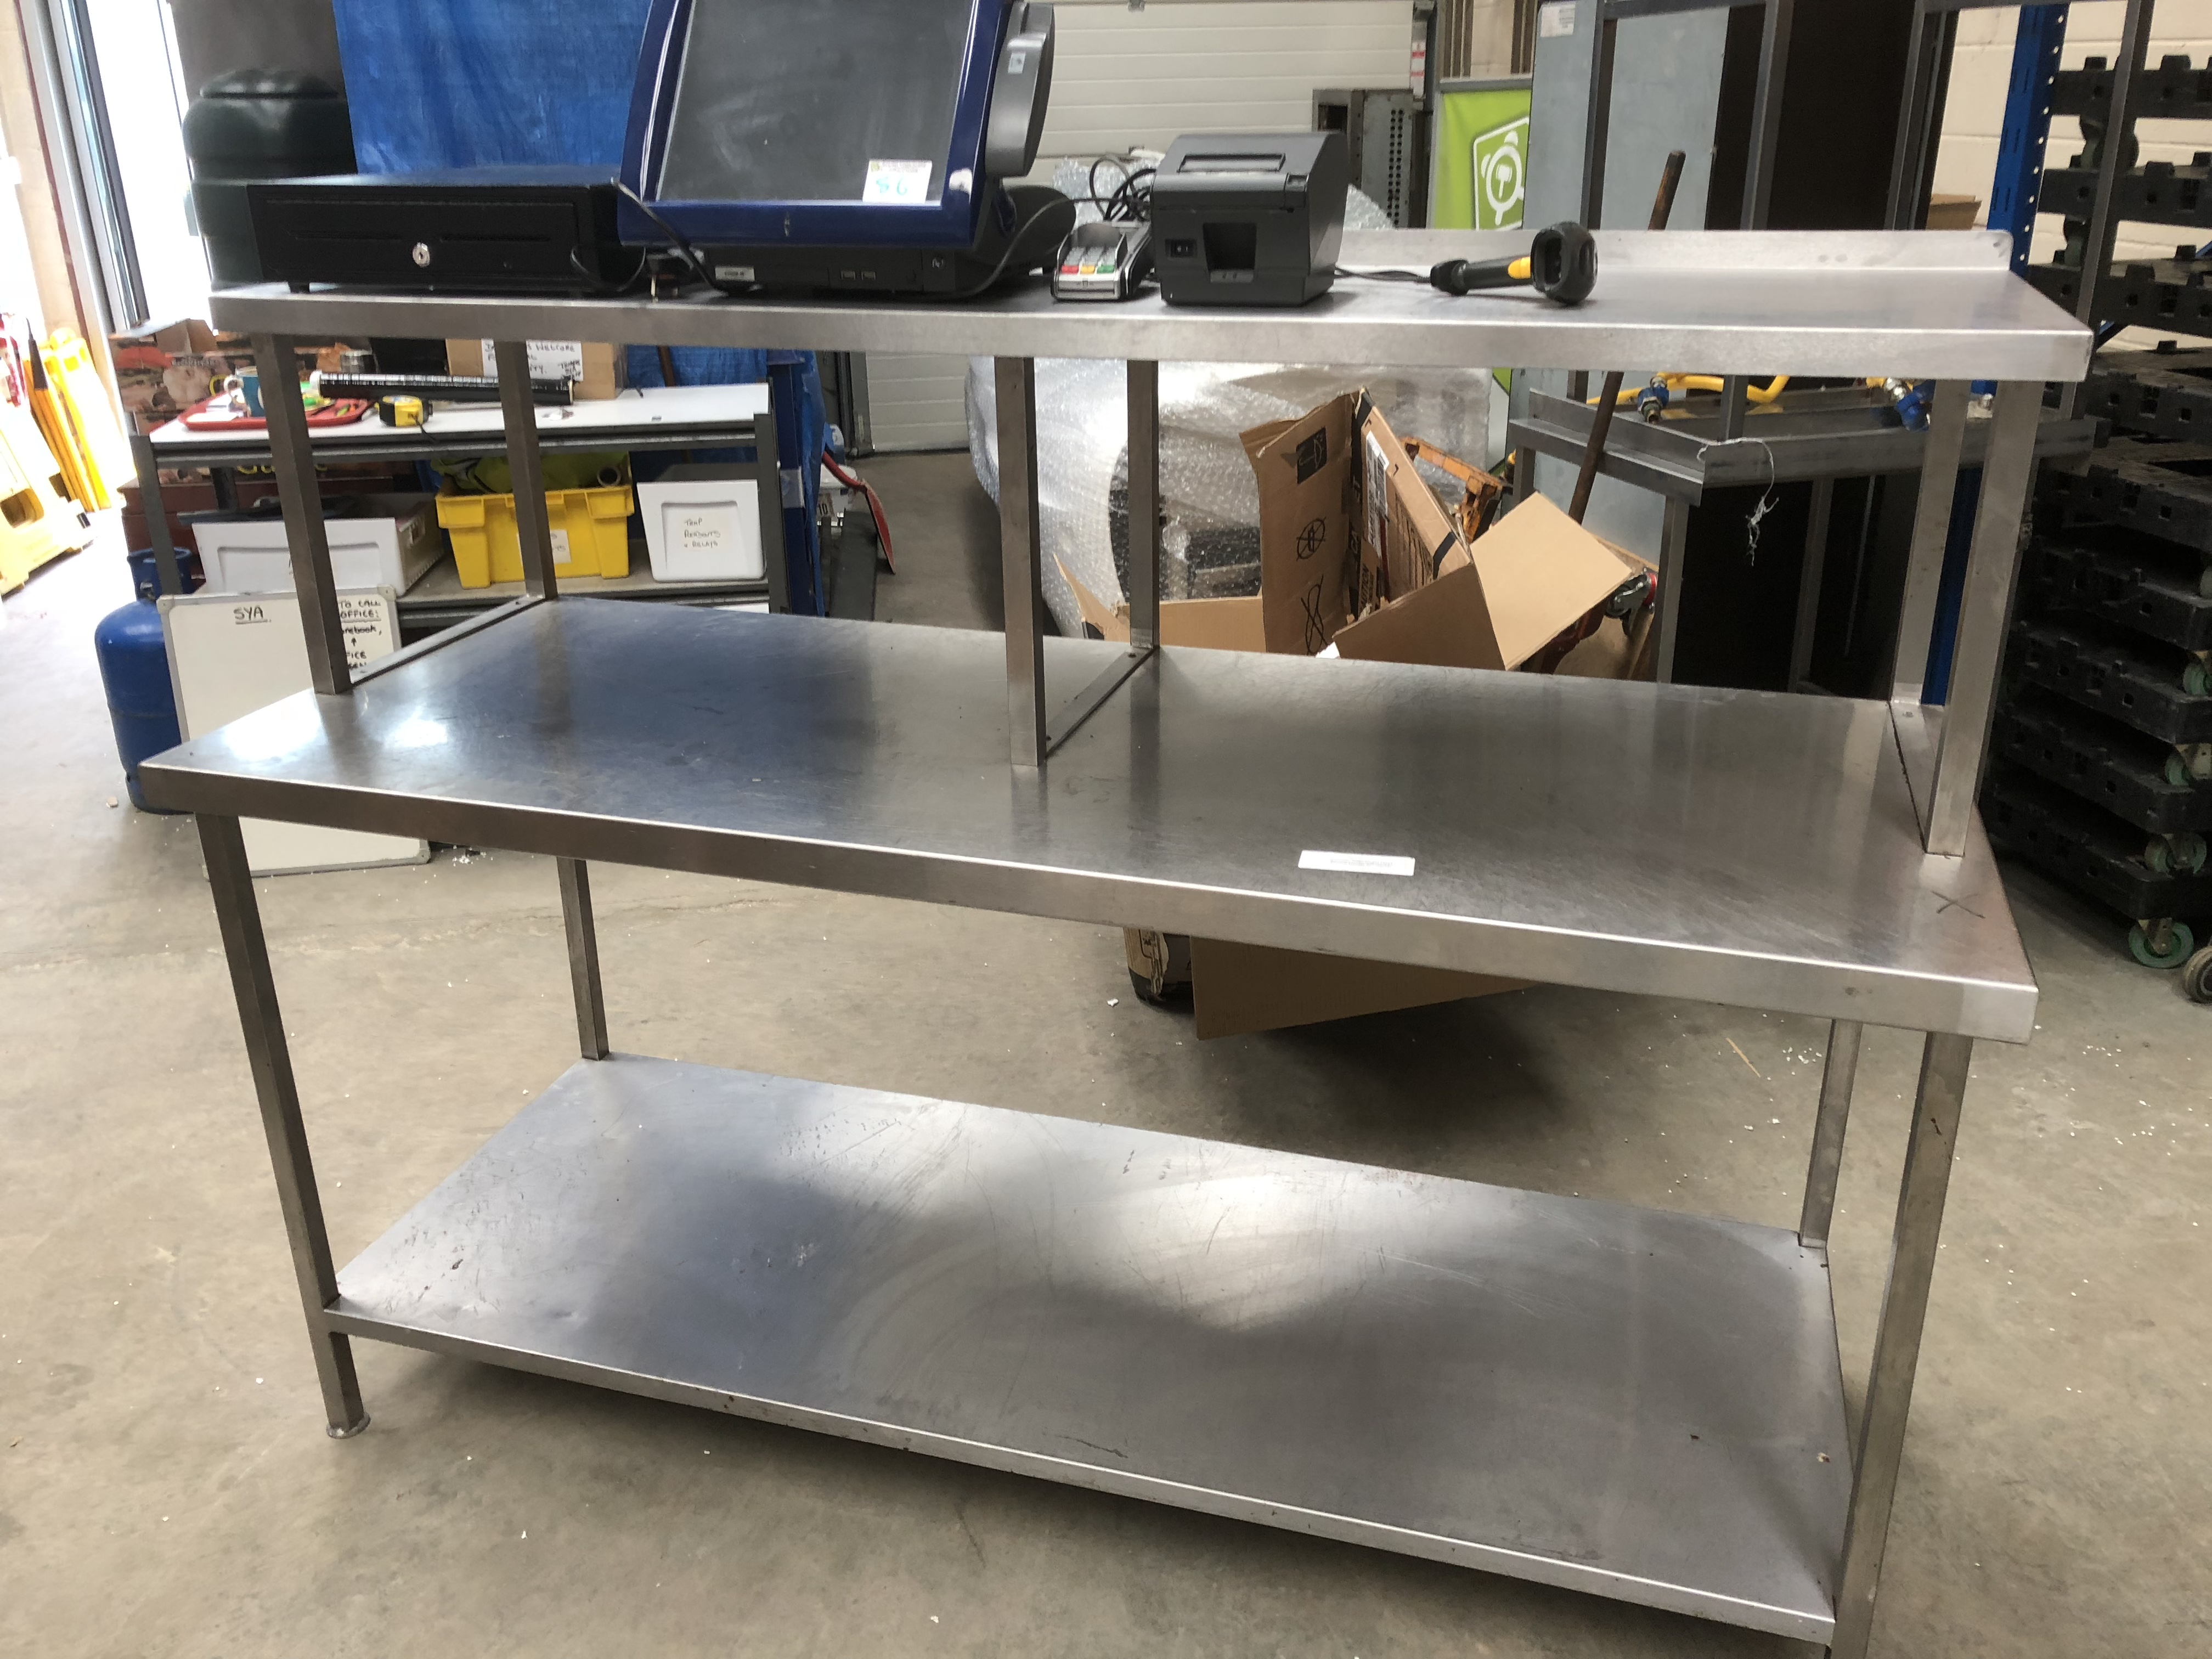 Lot 87 - Stainless Steel Table with Overhead Gantry